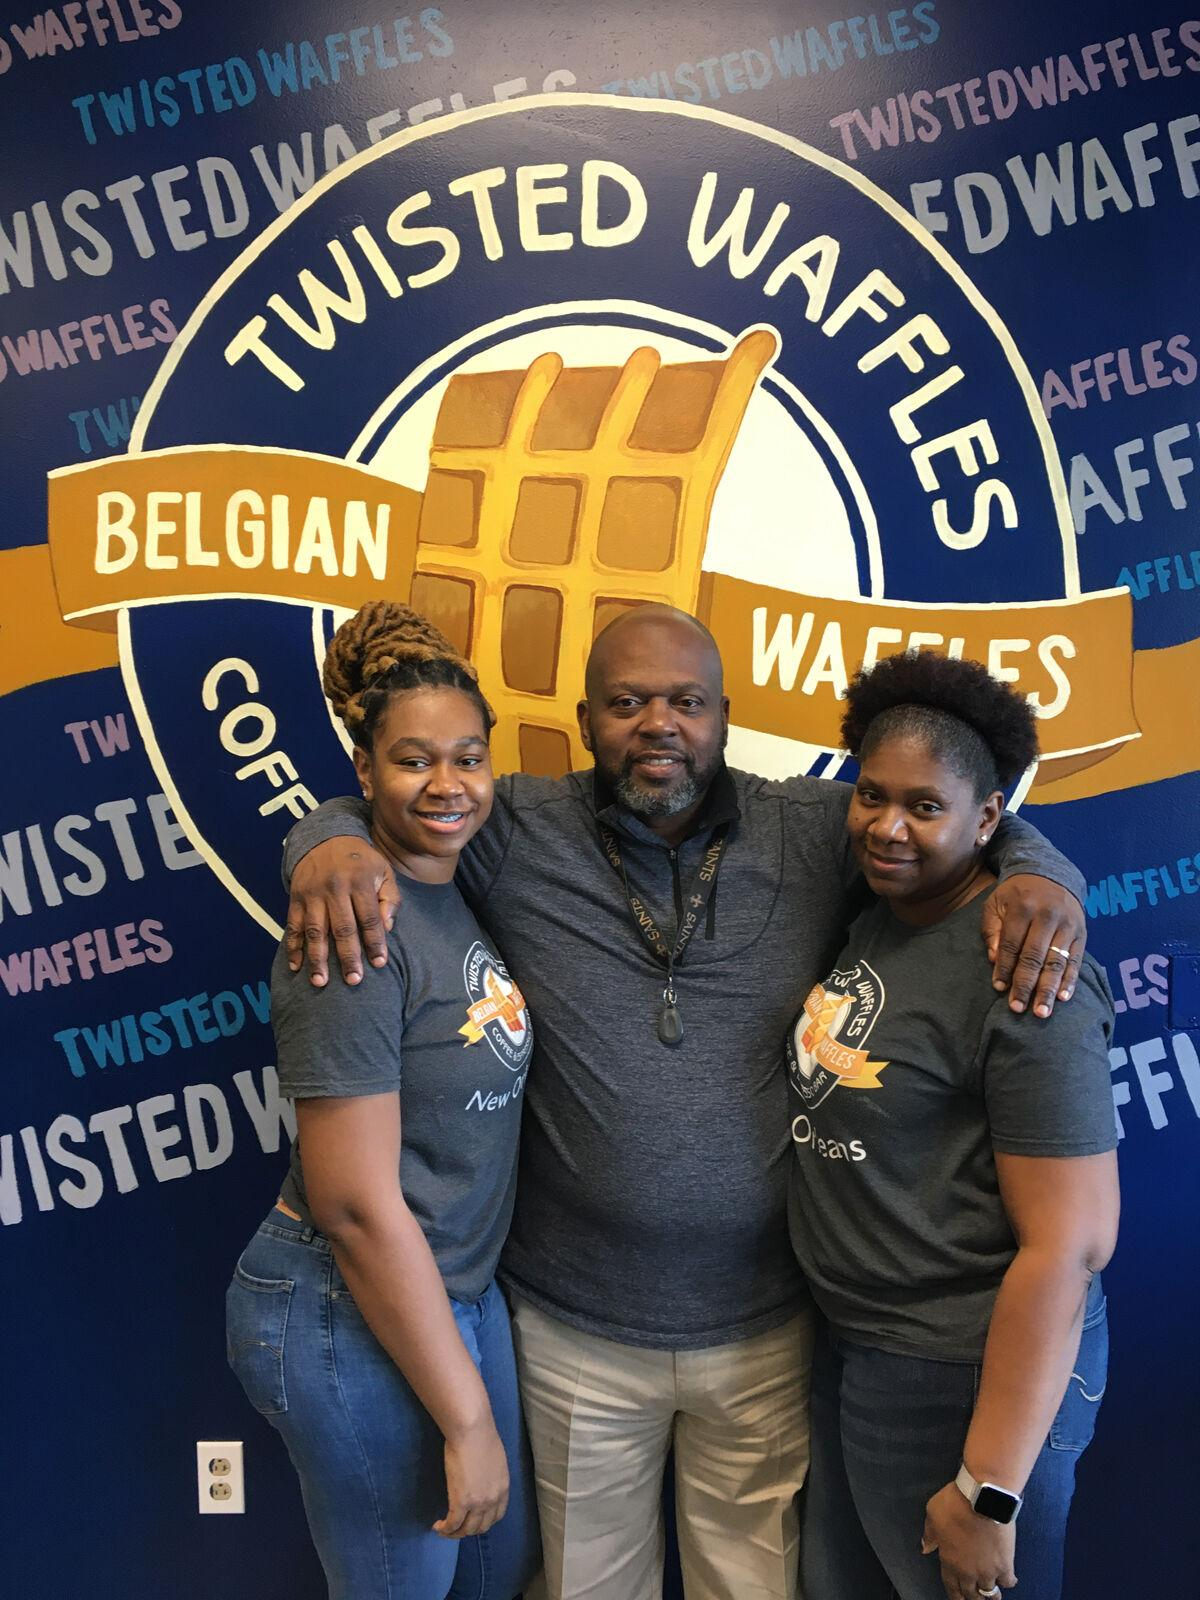 Twisted Waffles is now open in New Iberia – Breakfast & Lunch with a Twist